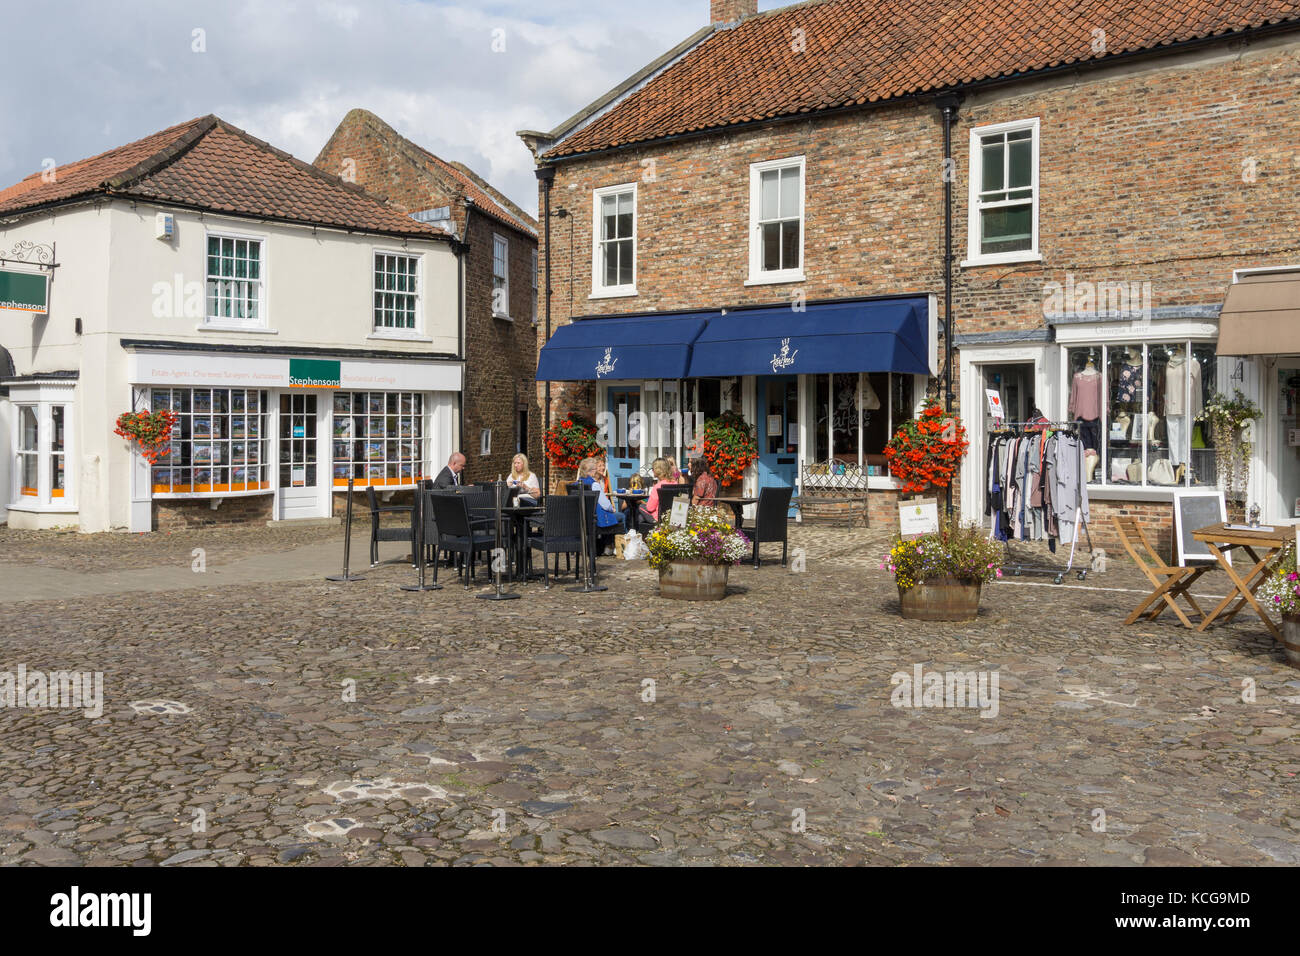 A view aross the square in the market town of Easingwold with people sitting outside the Tea Hee café; Yorkshire, - Stock Image